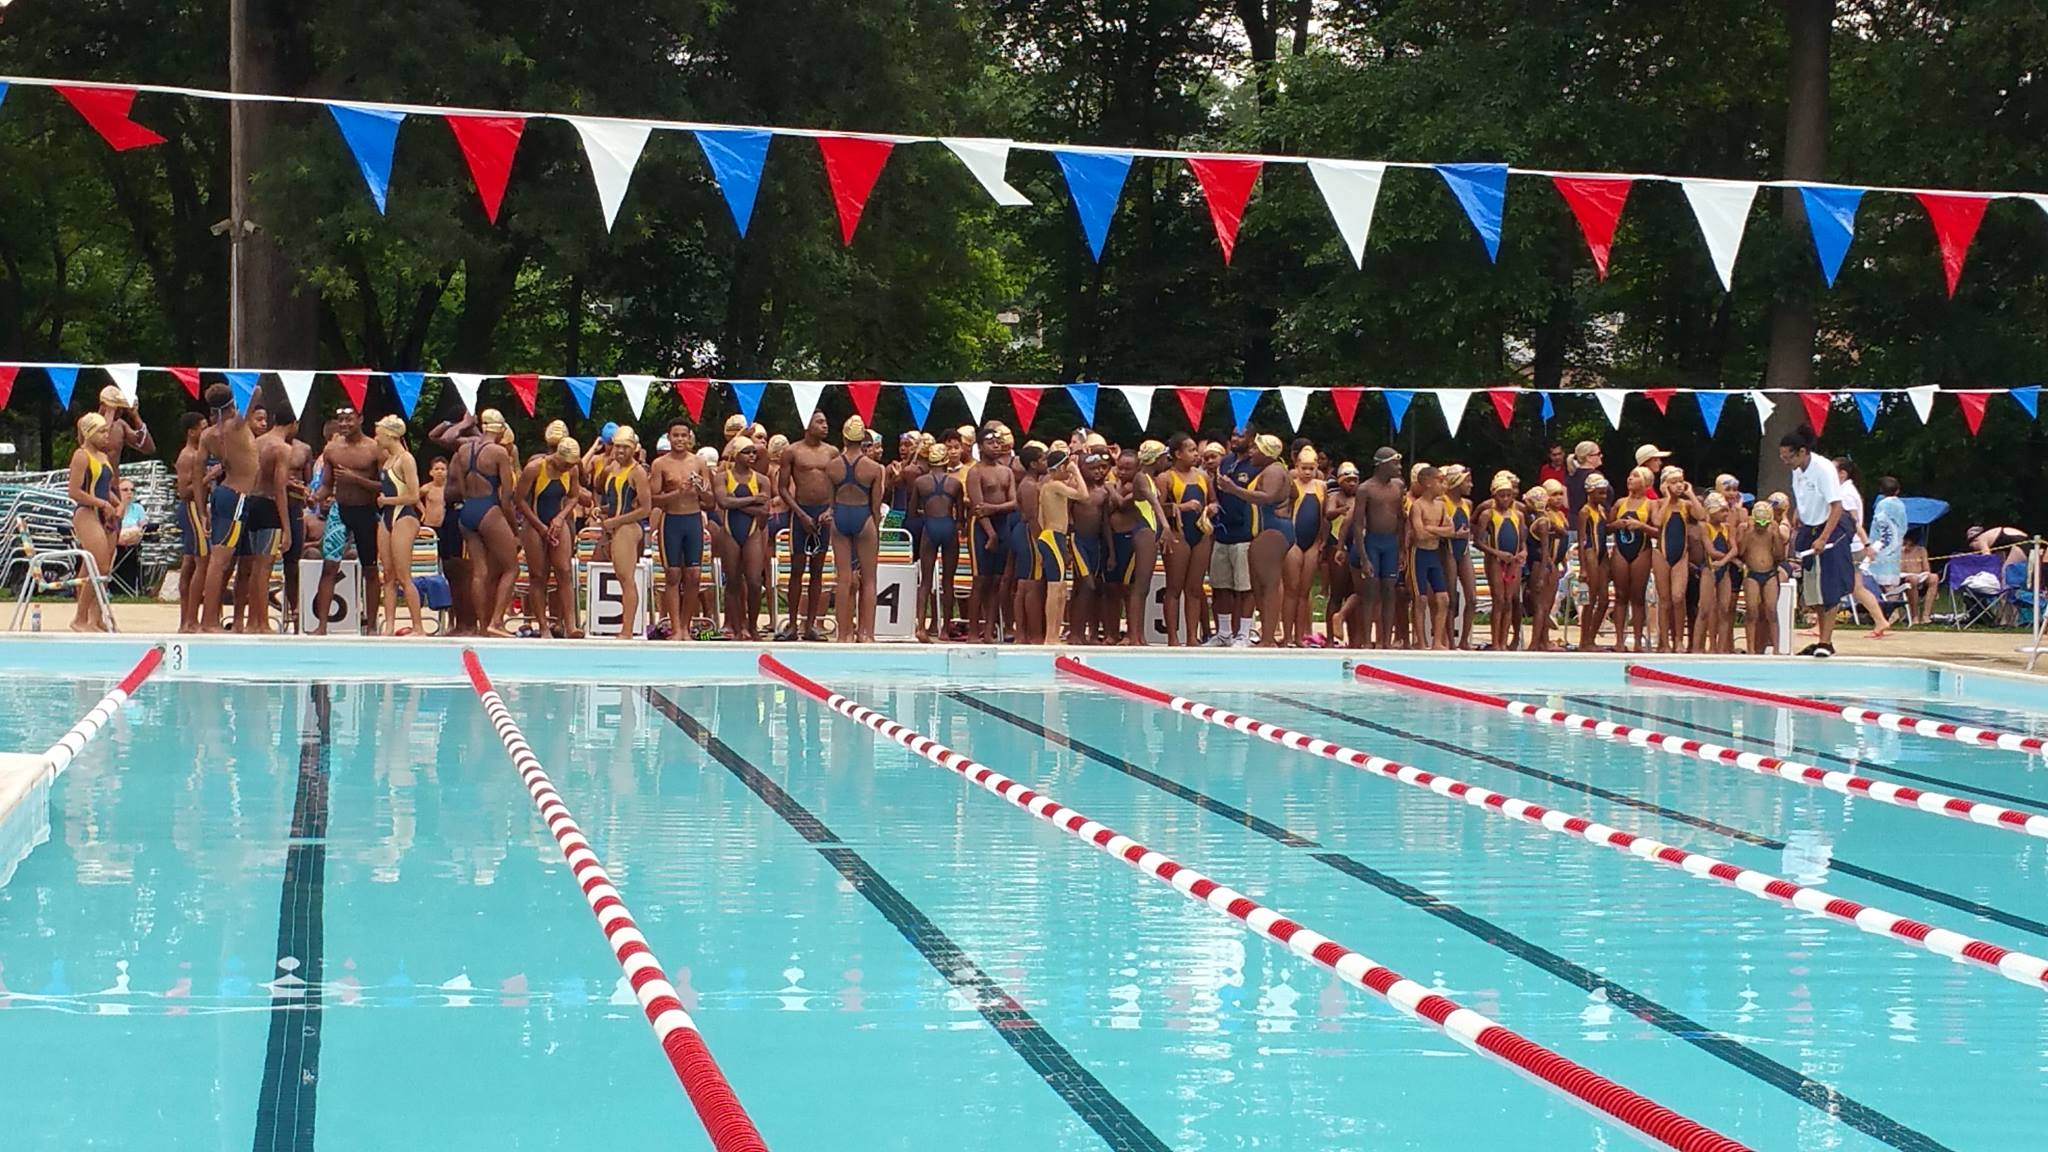 One word to describe this? RARE. I had the honor and privilege of swimming with a 100% minority swimming team from age 6-18. The  Theresa Banks Tigersharks  of Prince George's County, Md. have been undefeated and Prince-Mont Swim League champions since 2011.